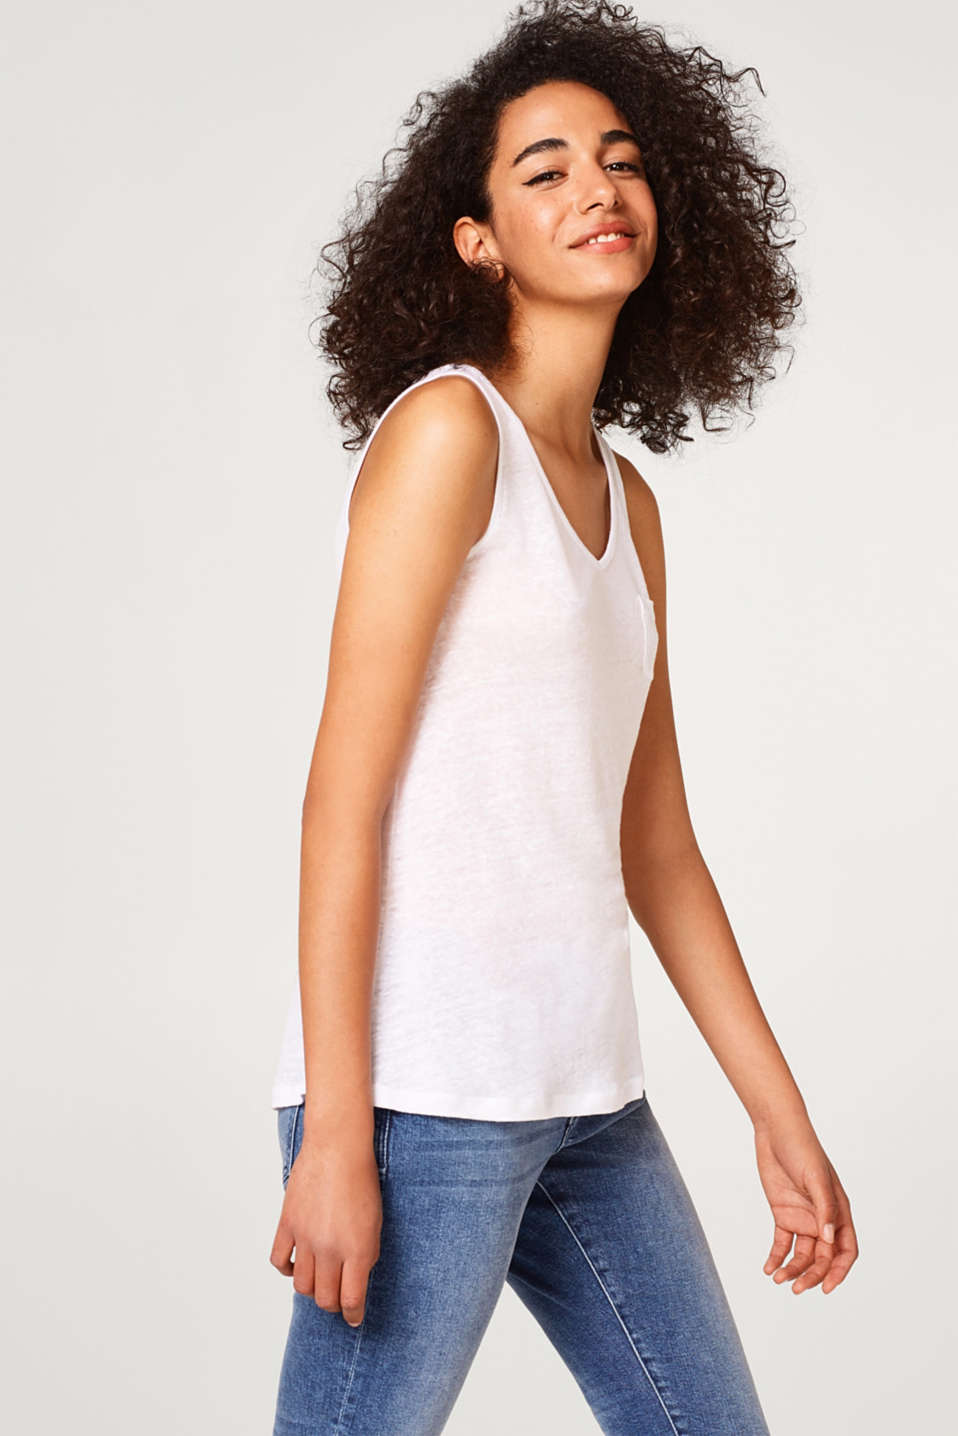 Esprit - 100% linen: A-line linen top with a breast pocket